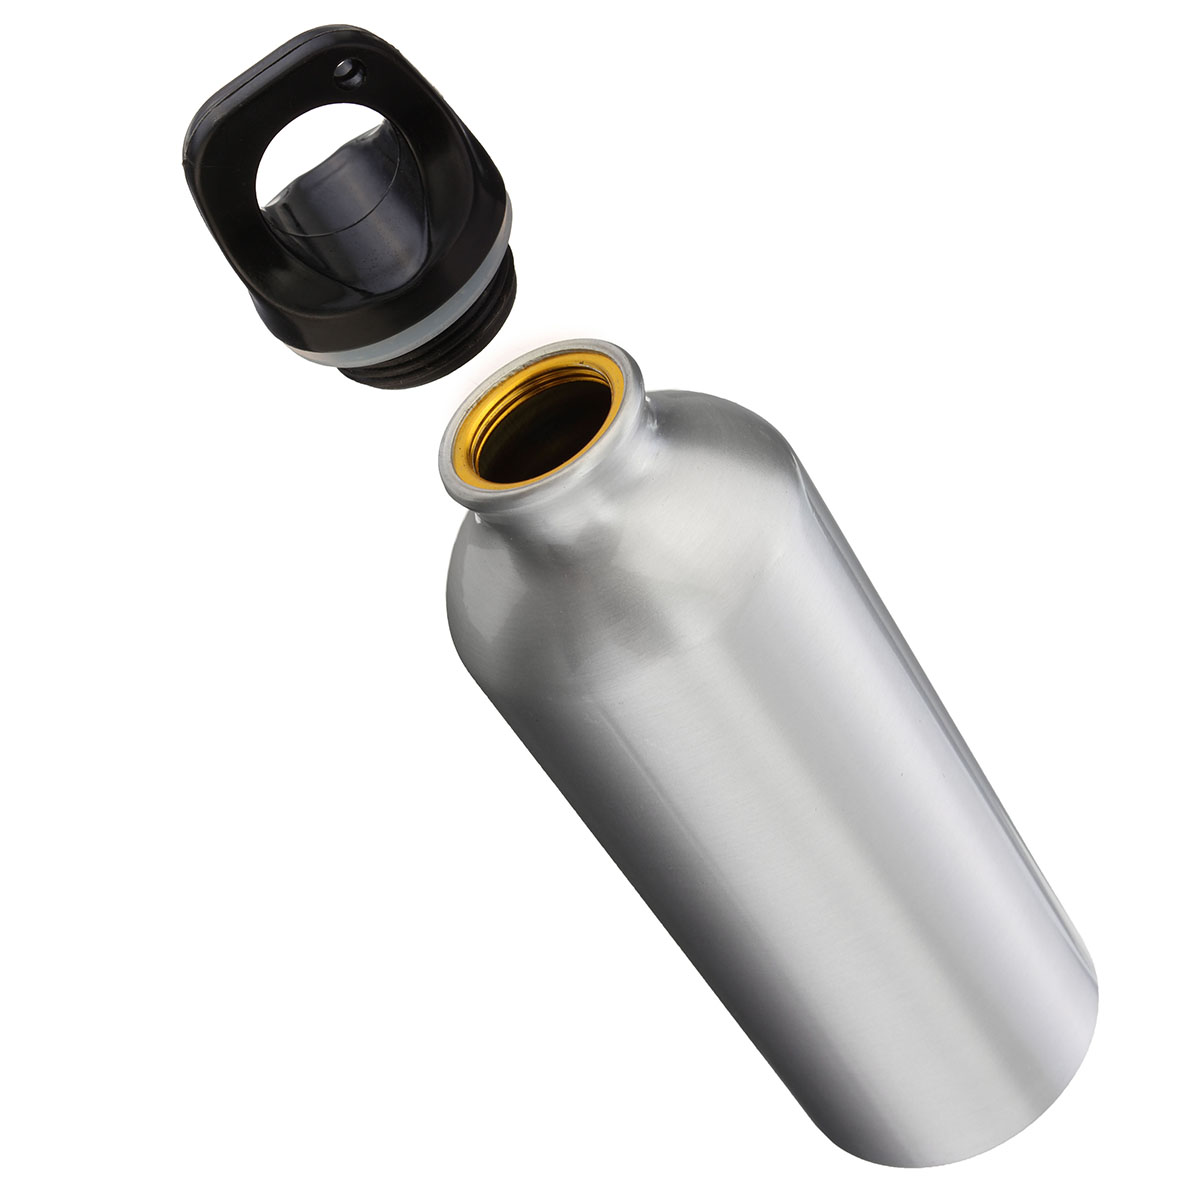 1 pc Water Bottle Drinkware Drinking Bottle for Outdoor Travel Bicycle Sports